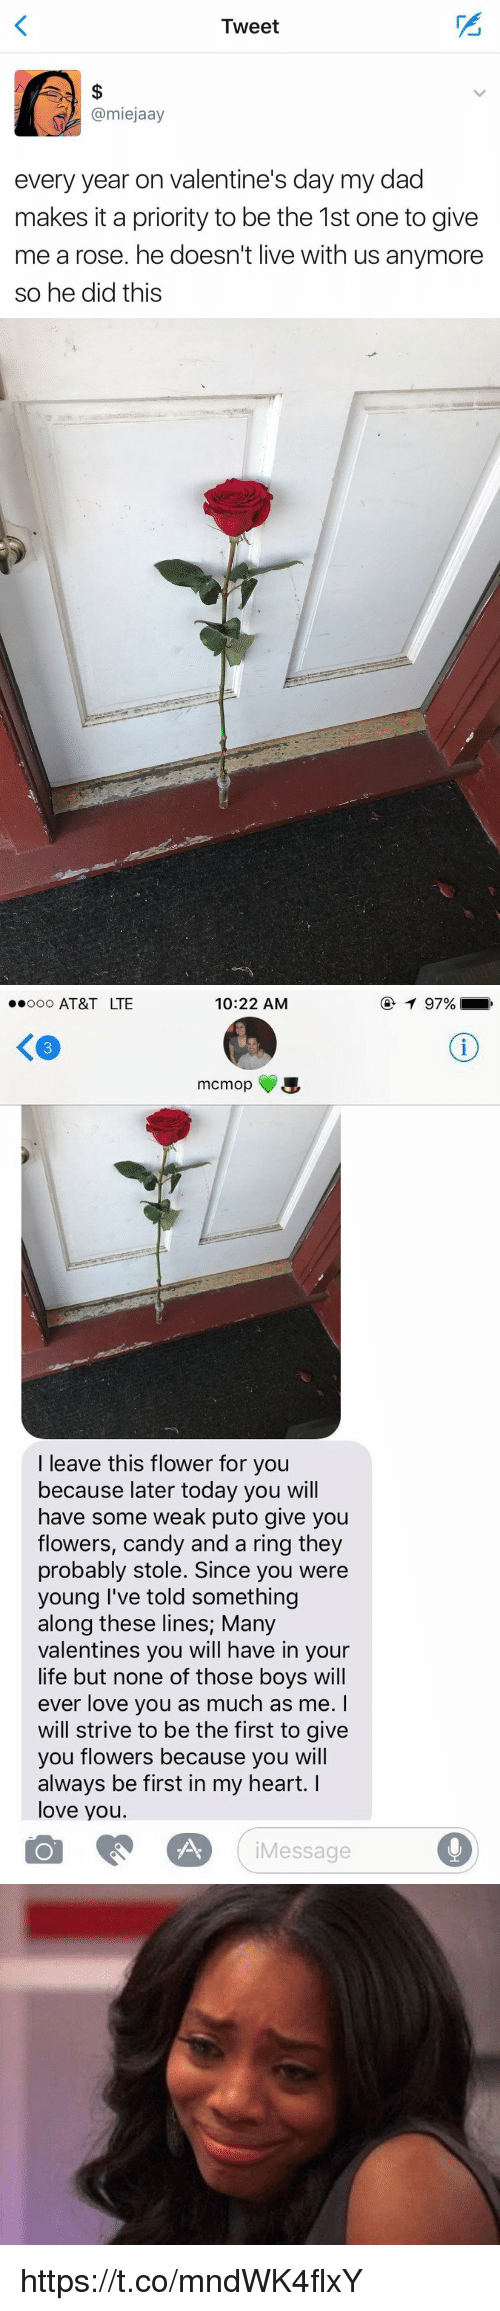 Valentin: Tweet  @miejaay  every year on valentine's day my dad  makes it a priority to be the 1st one to give  me arose. he doesn't live with us anymore  so he did this   10:22 AM  ooooo AT&T LTE  mcm op  a  I leave this flower for you  because later today you will  have some weak puto give you  flowers, candy and a ring they  probably stole. Since you were  young I've told something  along these lines; Many  Valentines you will have in your  life but none of those boys will  ever love you as much as me.  will strive to be the first to give  you flowers because you will  always be first in my heart. I  love you.  Message  97% https://t.co/mndWK4flxY